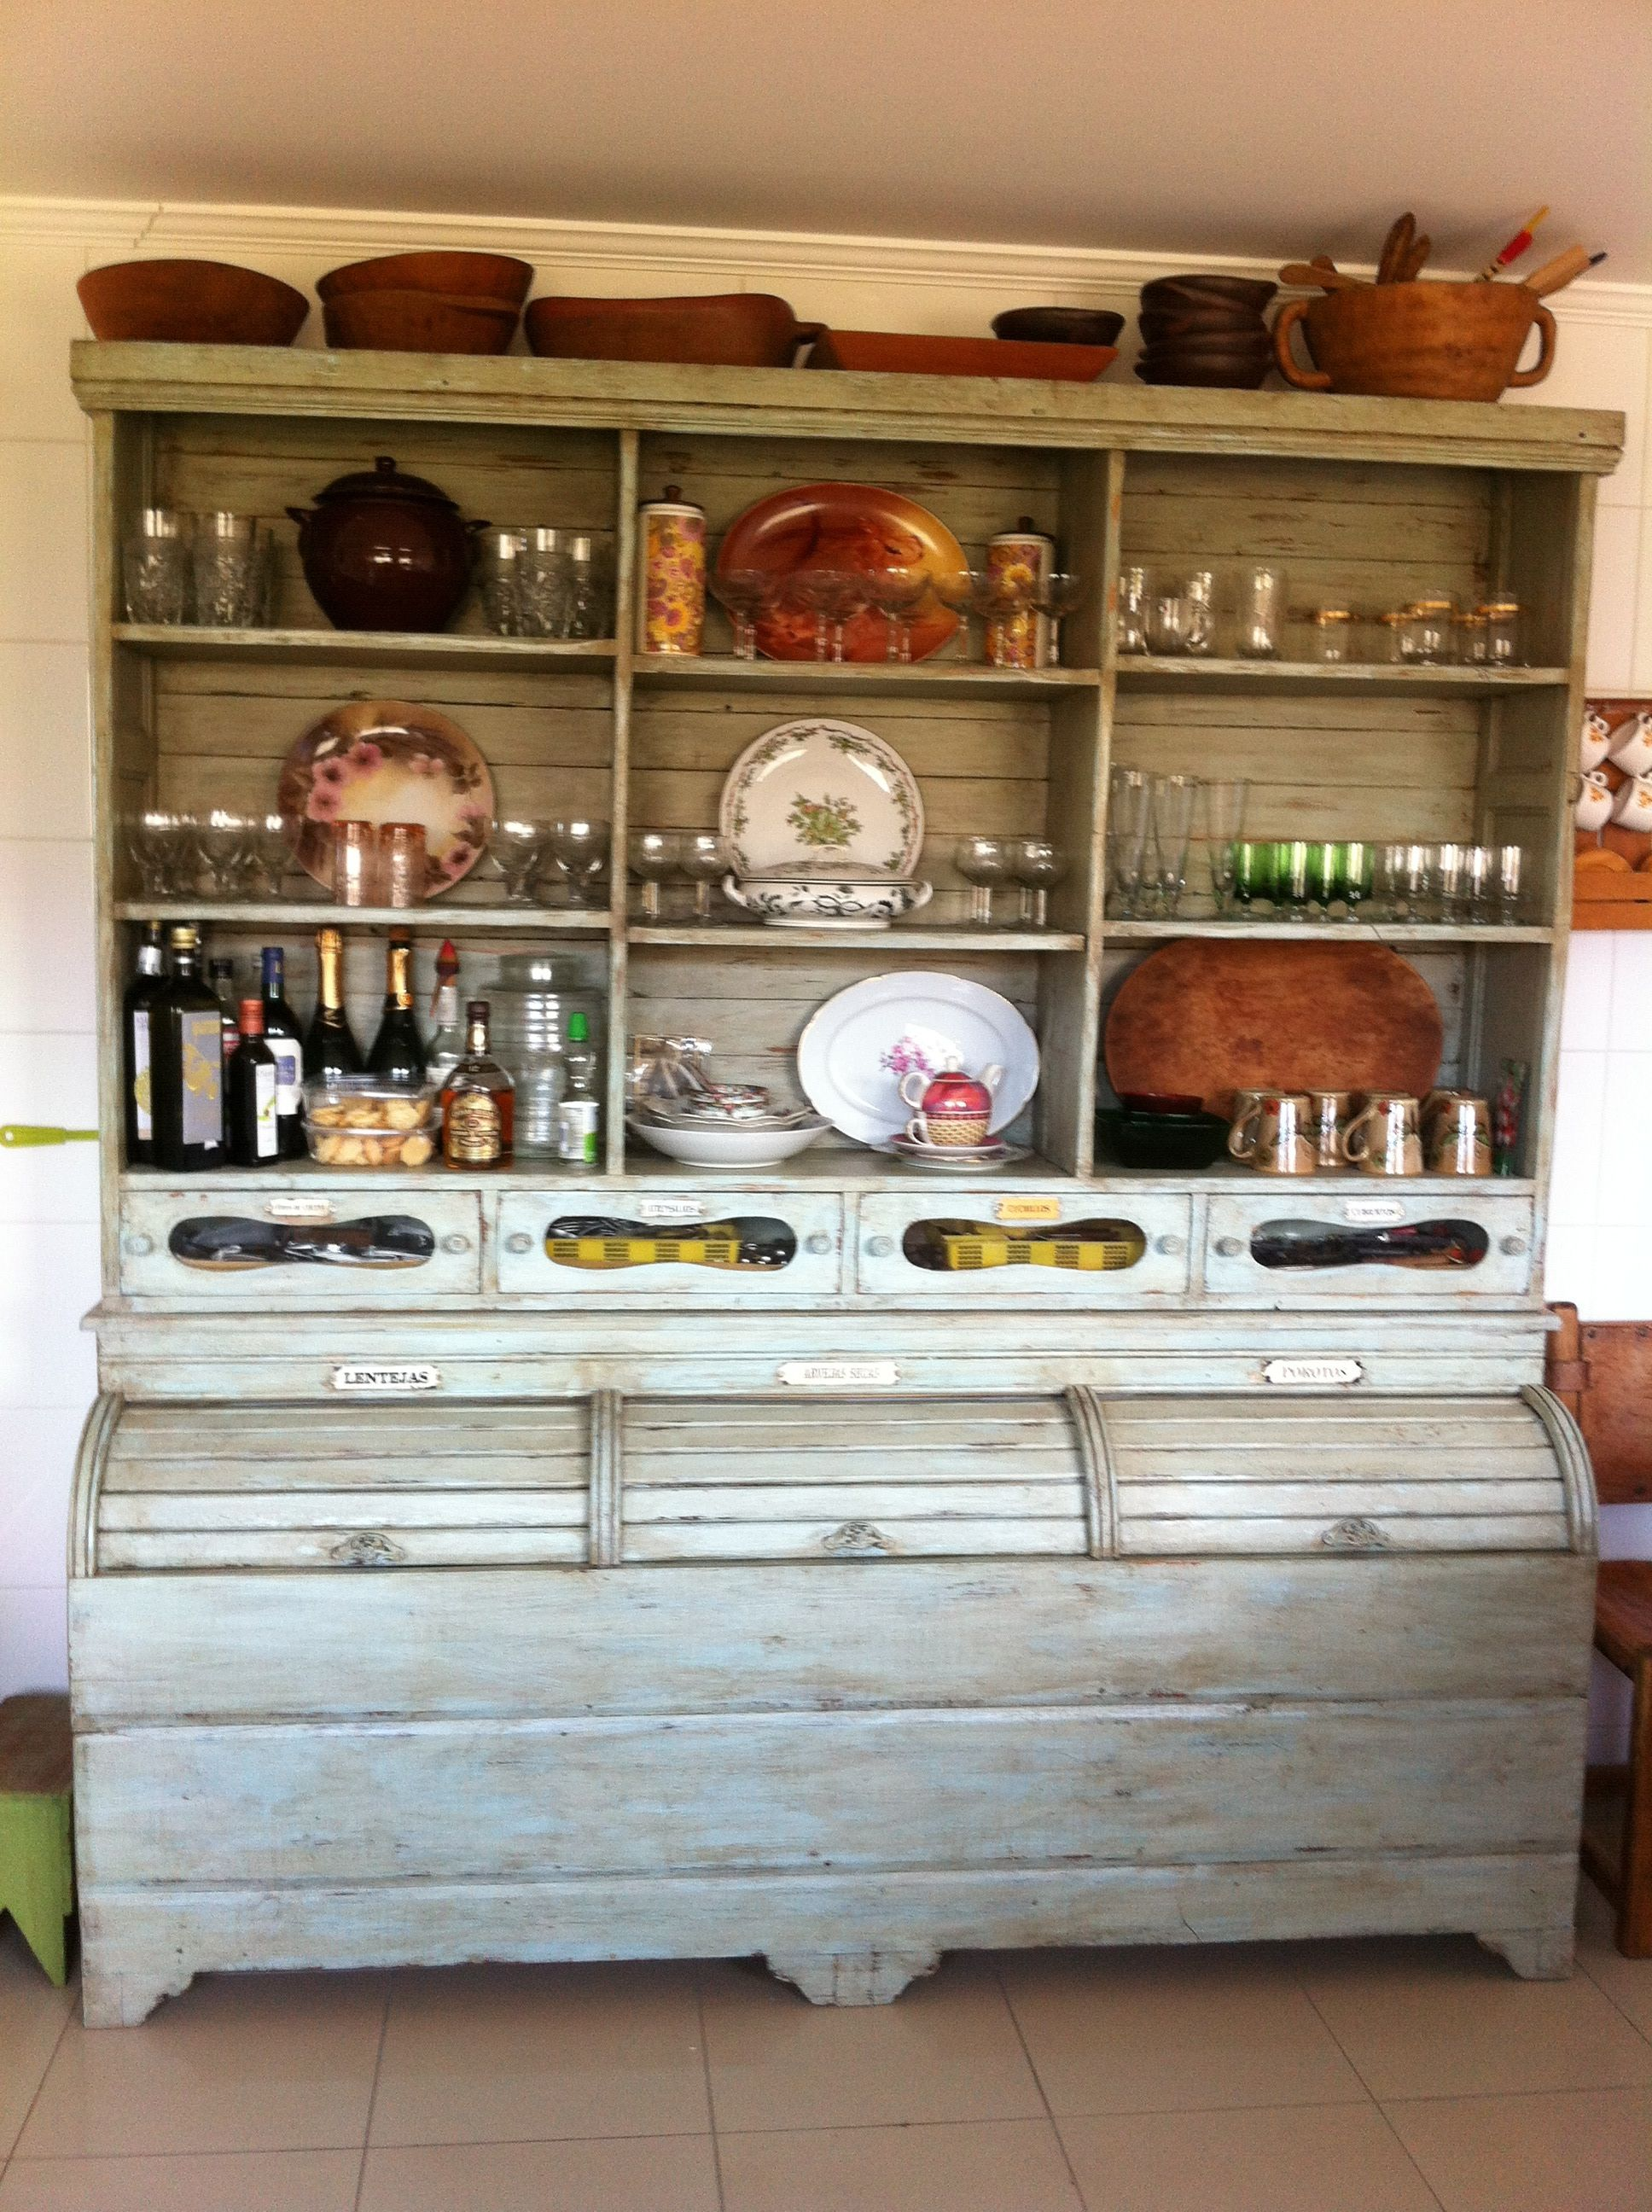 Antiguo mueble de cocina/ old kitchen furniture | Ideas para ...